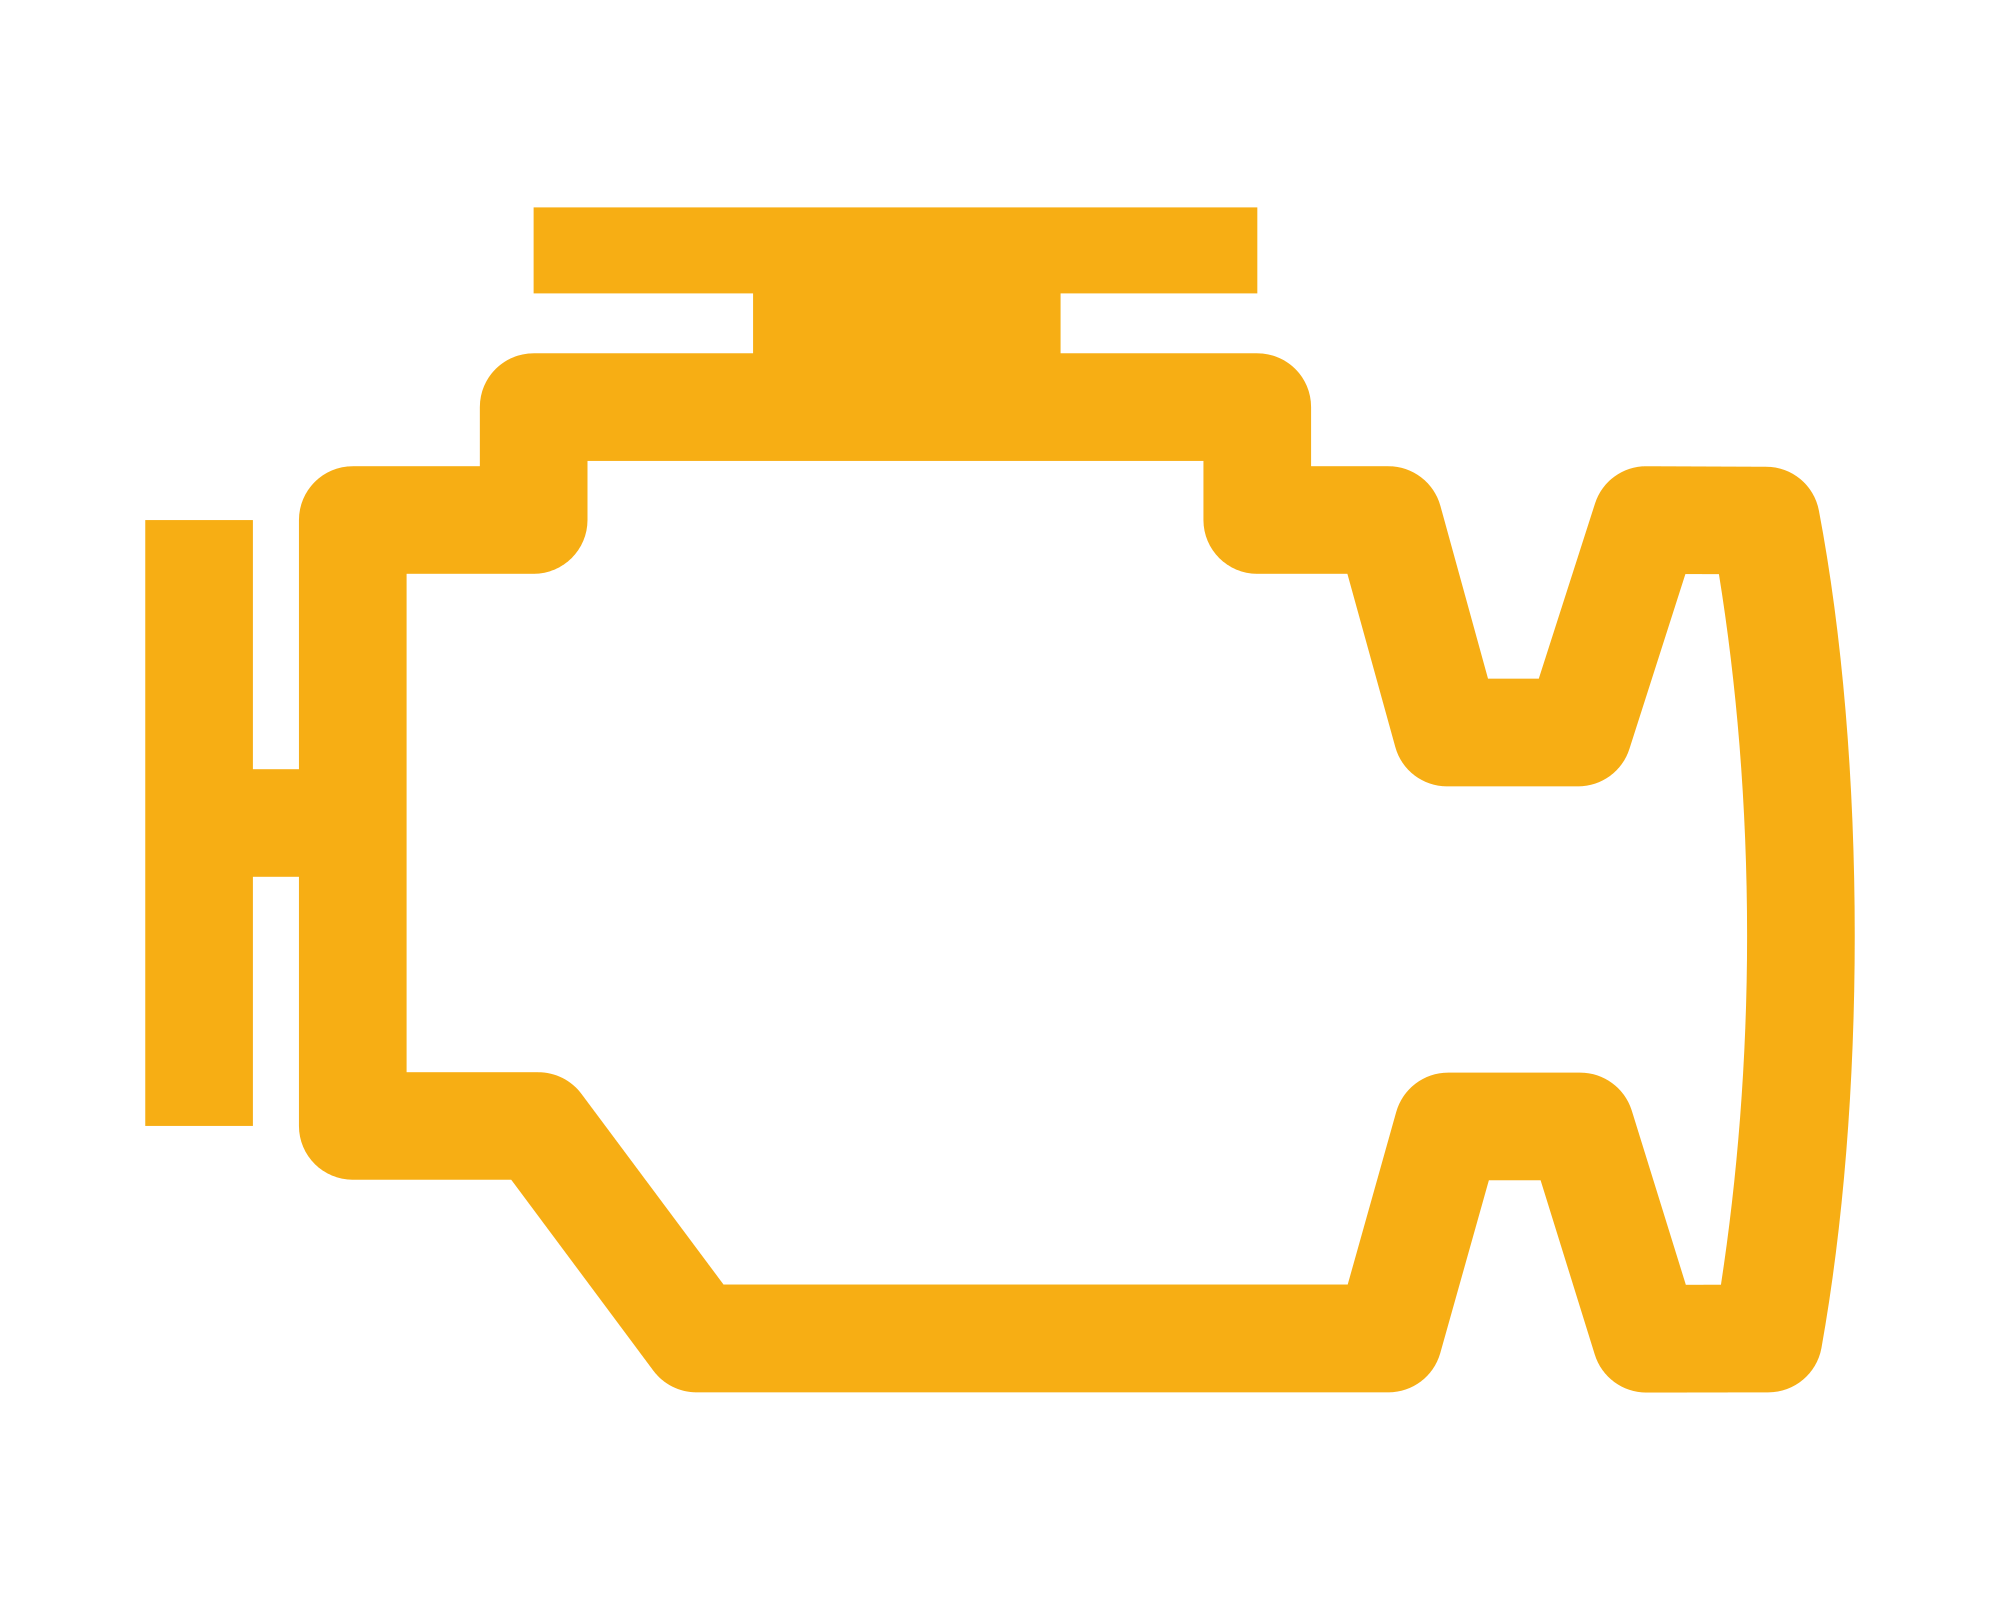 Light Switch Icon Png Check Engine Light Repair Speedysautorepair